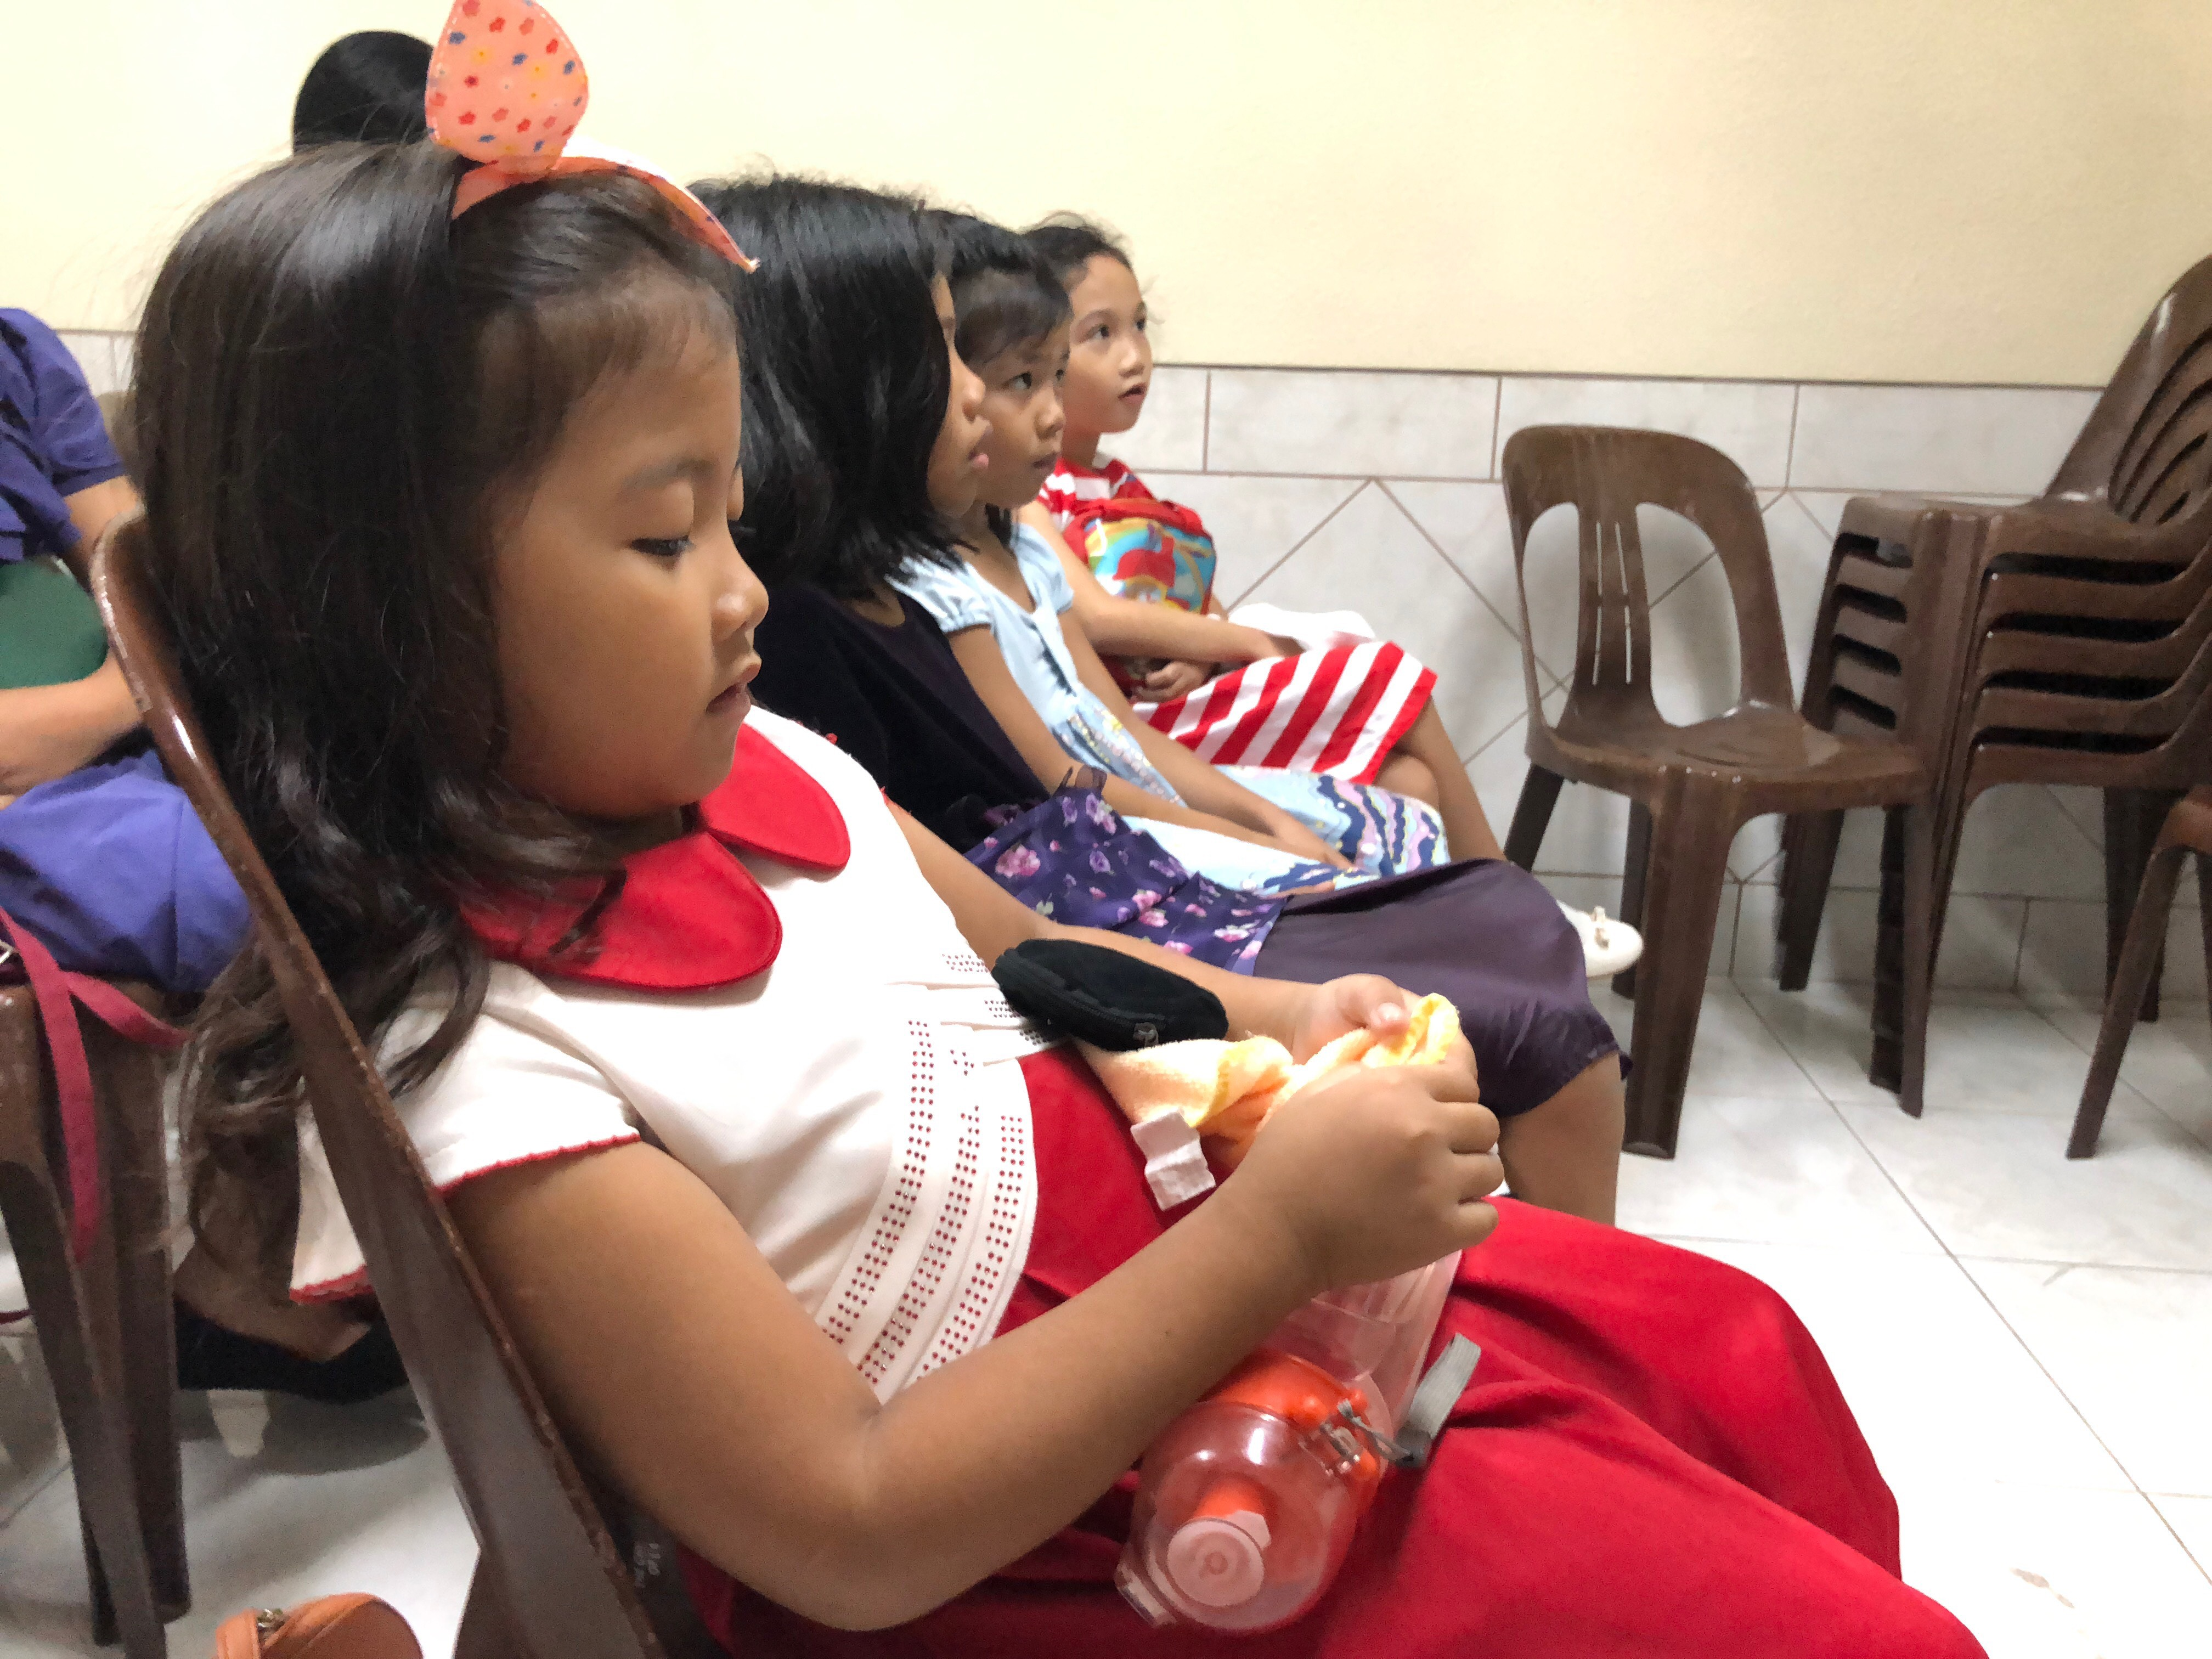 Children attend Primary in the Philippines, during the 140th anniversary year of the organization in August 2018.